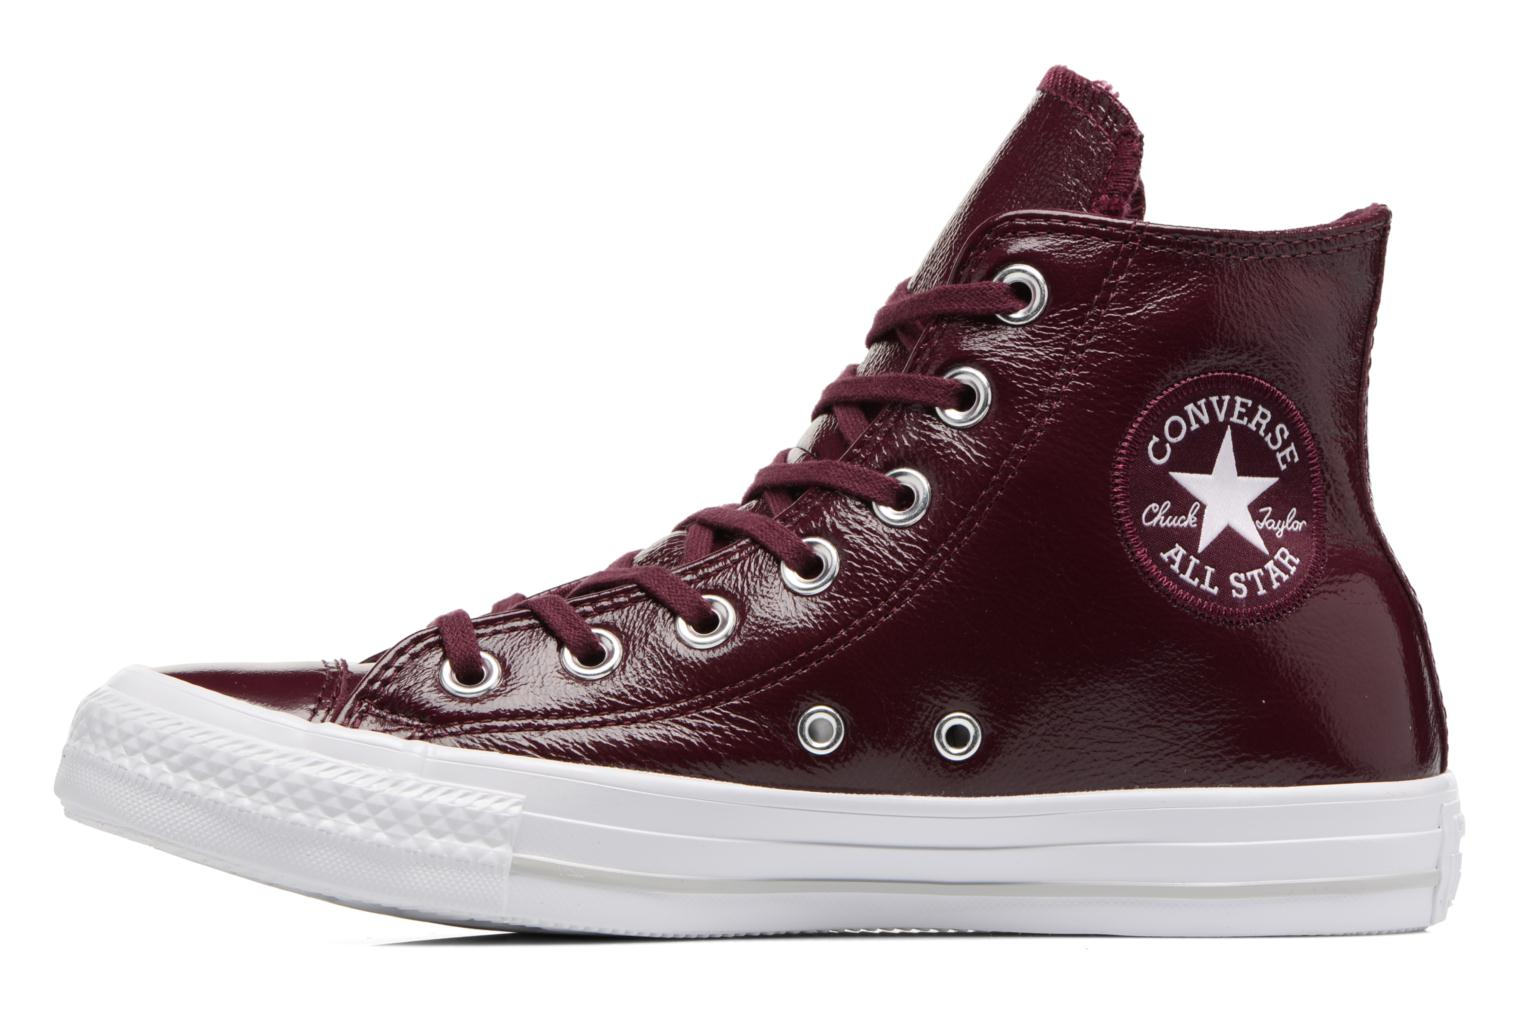 Deportivas Converse Chuck Taylor All Star Crinkled Patent Leather Hi Vino vista de frente